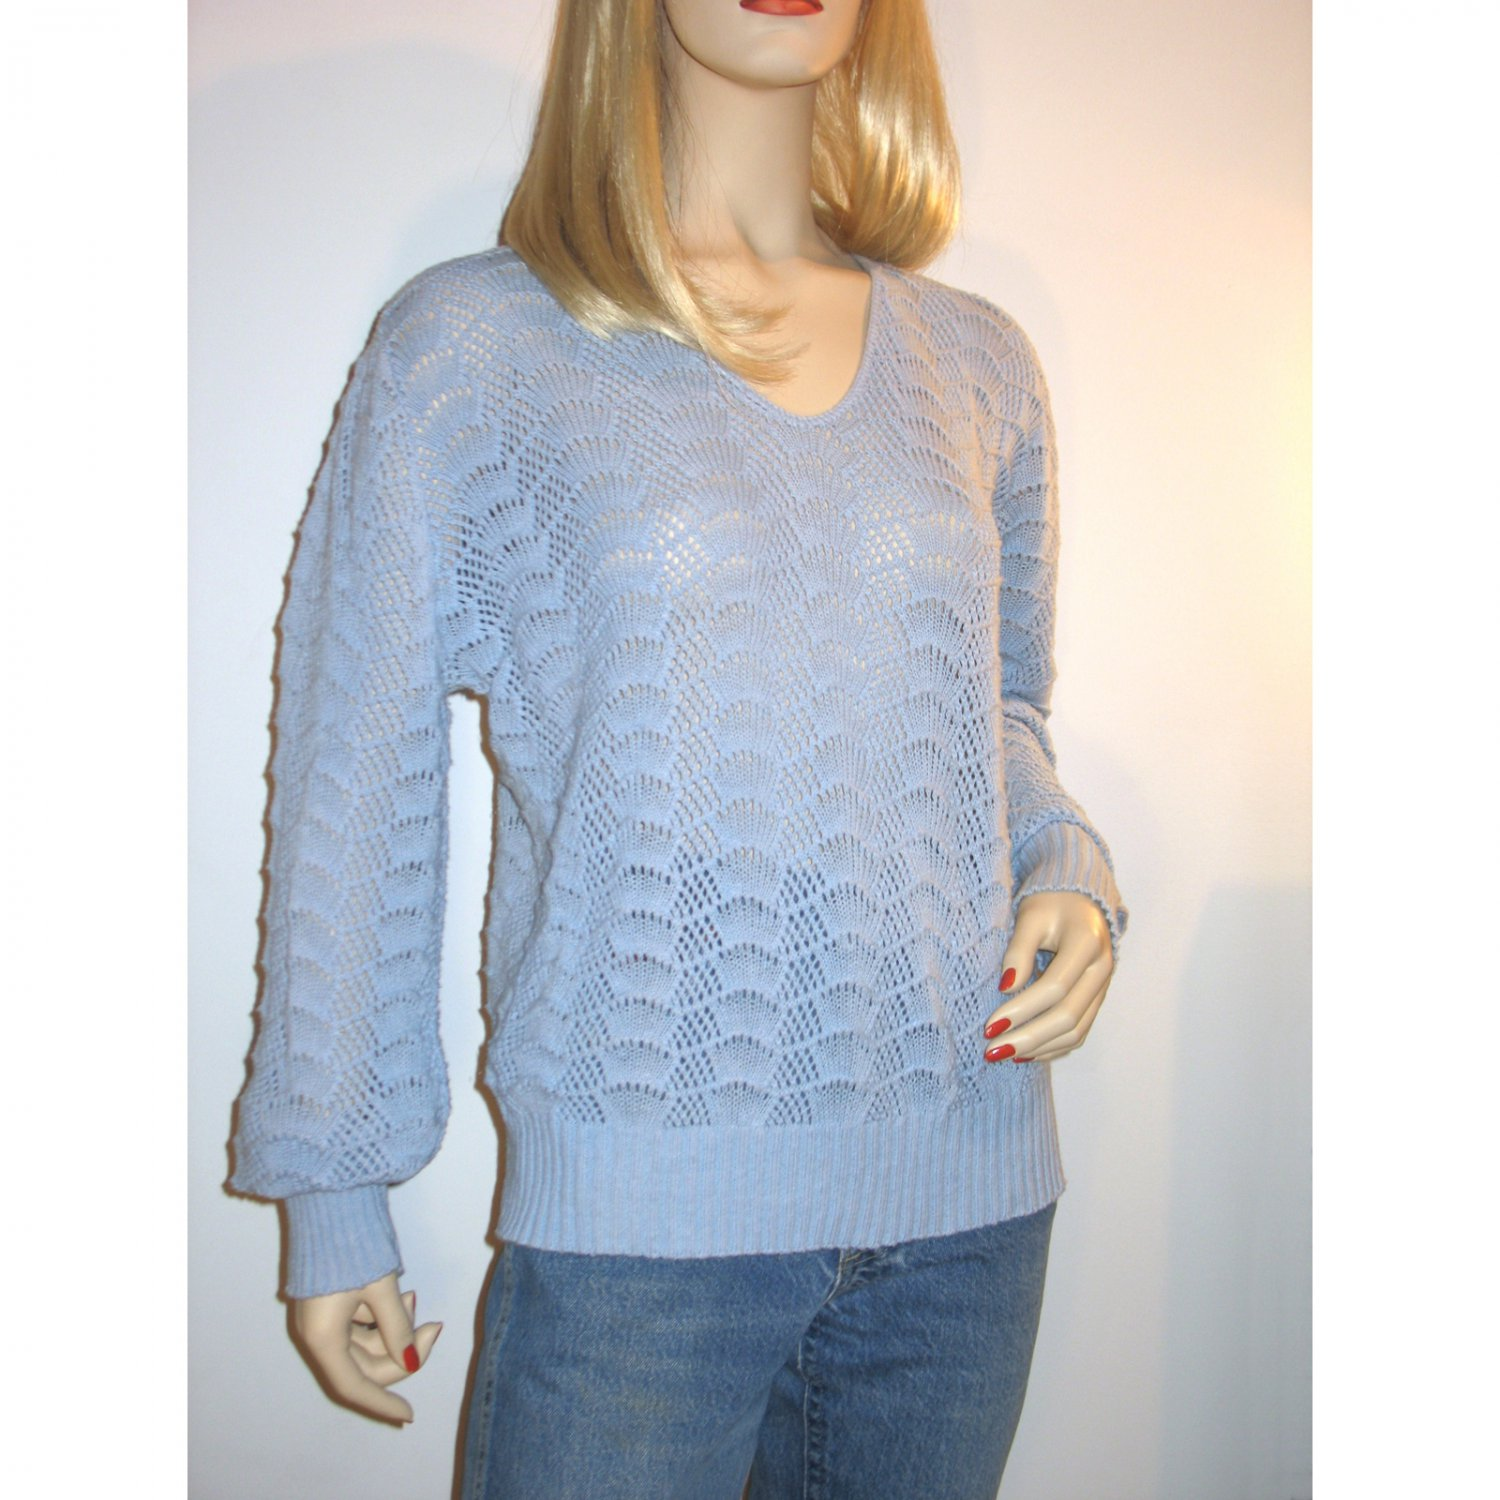 Vintage 70s Cuddle Knit Pointelle Sweater Open Weave Knit Preppy Pullover Baby Blue - Size M/L